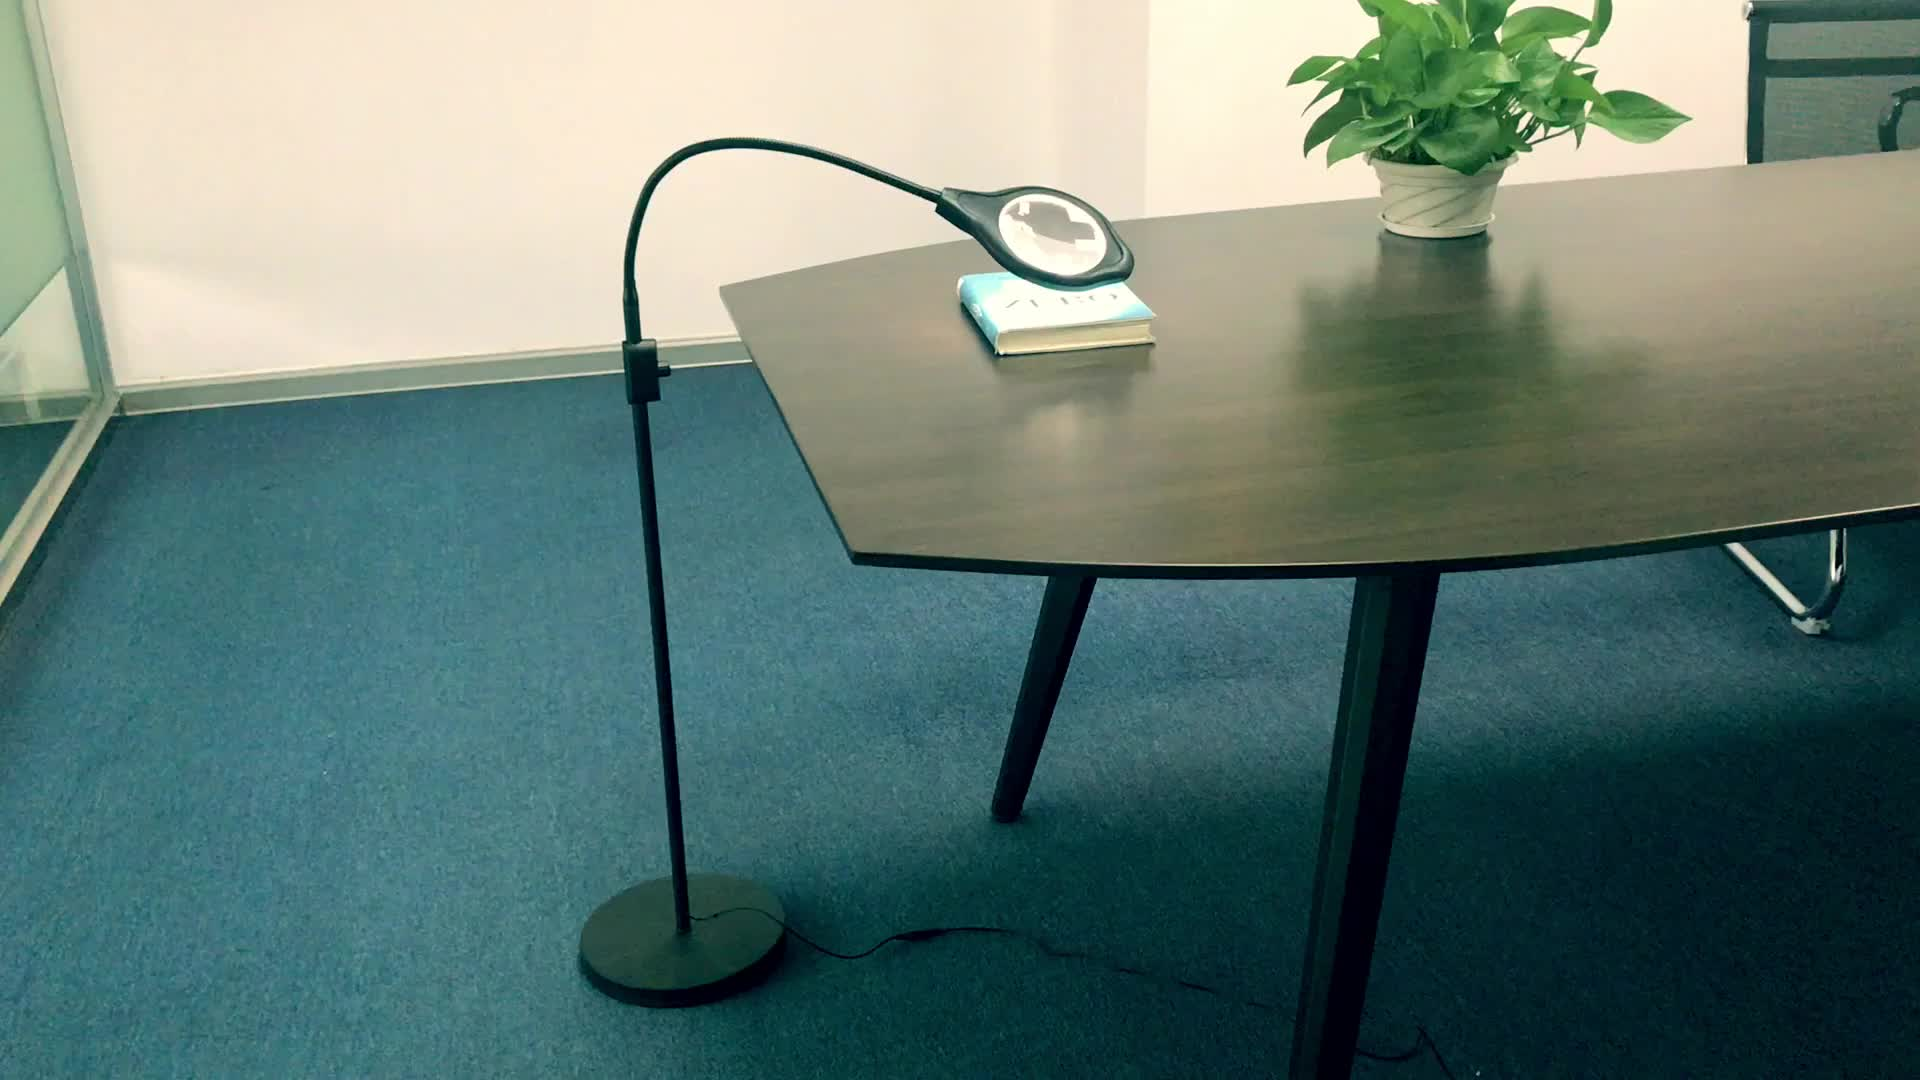 DH-88013 Color Temperature Adjustable LED Lighted Magnifier Floor Lamp